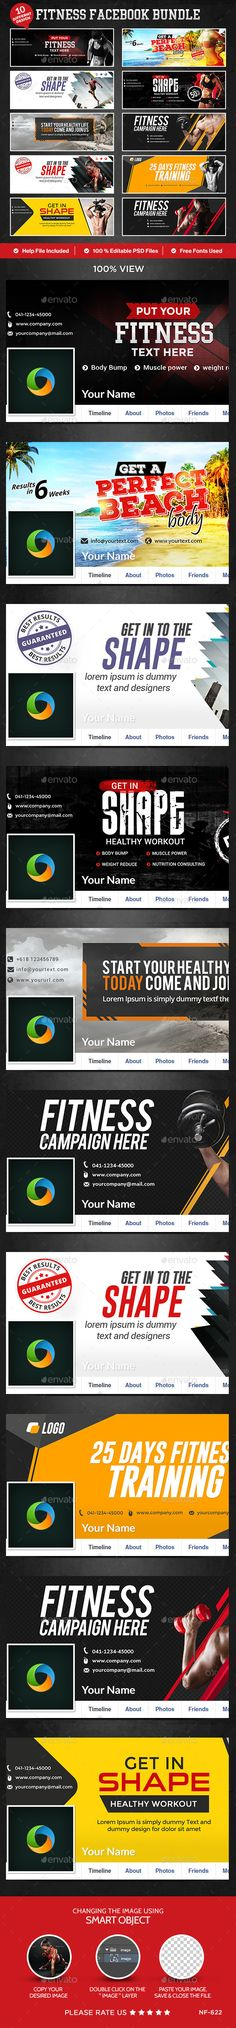 Fitness Facebook Covers  10 Designs — Photoshop PSD #studio #web banner • Available here → https://graphicriver.net/item/fitness-facebook-covers-10-designs/12801133?ref=pxcr